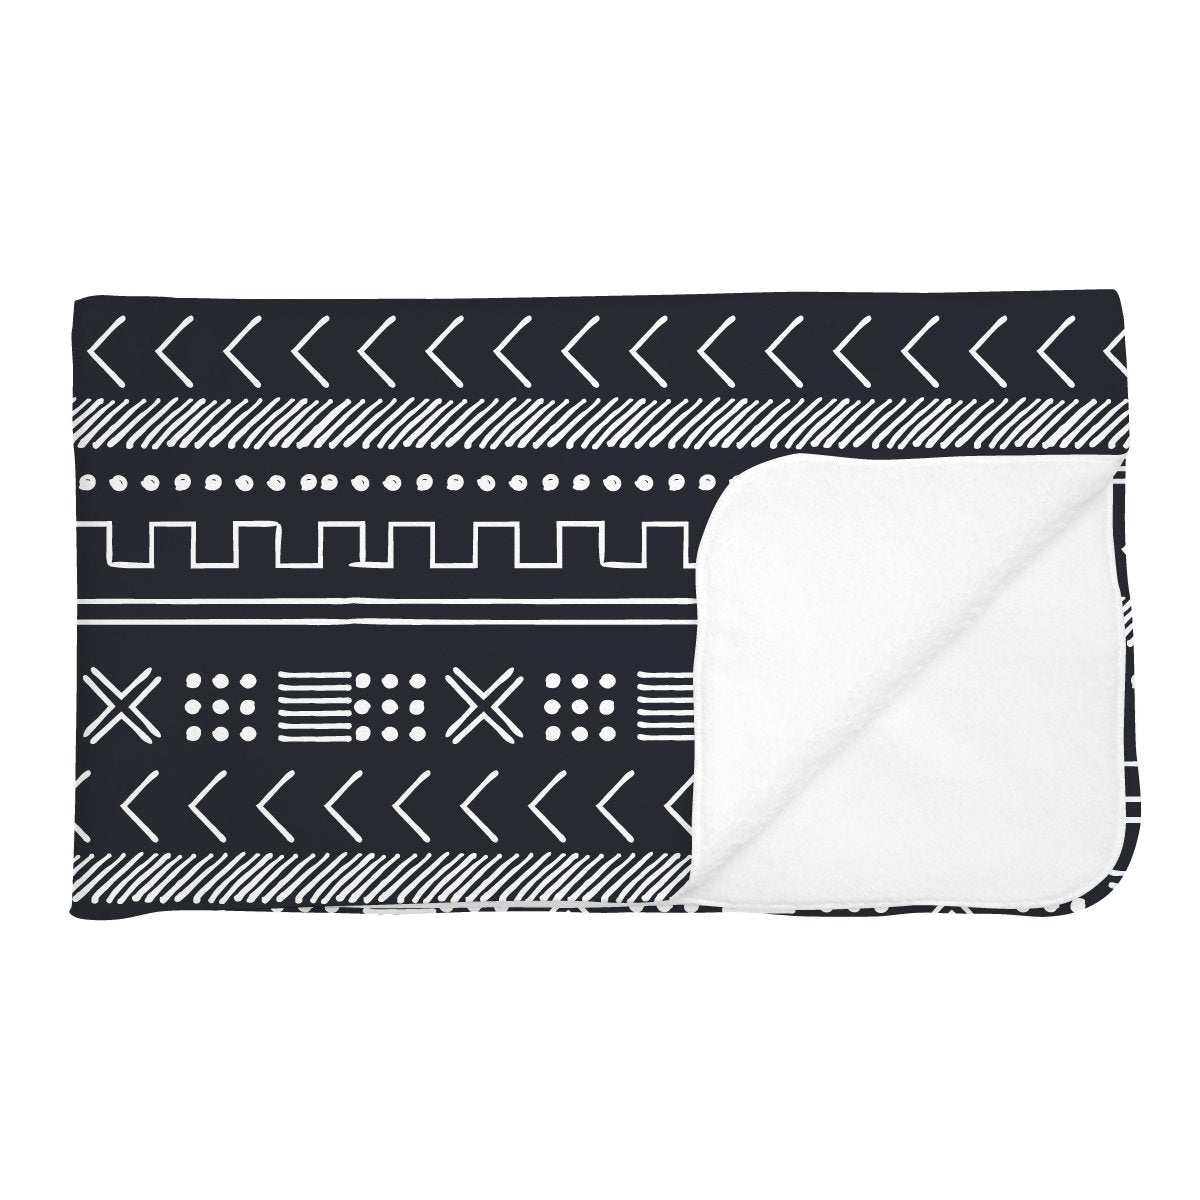 Tiago's Charcoal Tribe | Adult Size Blanket